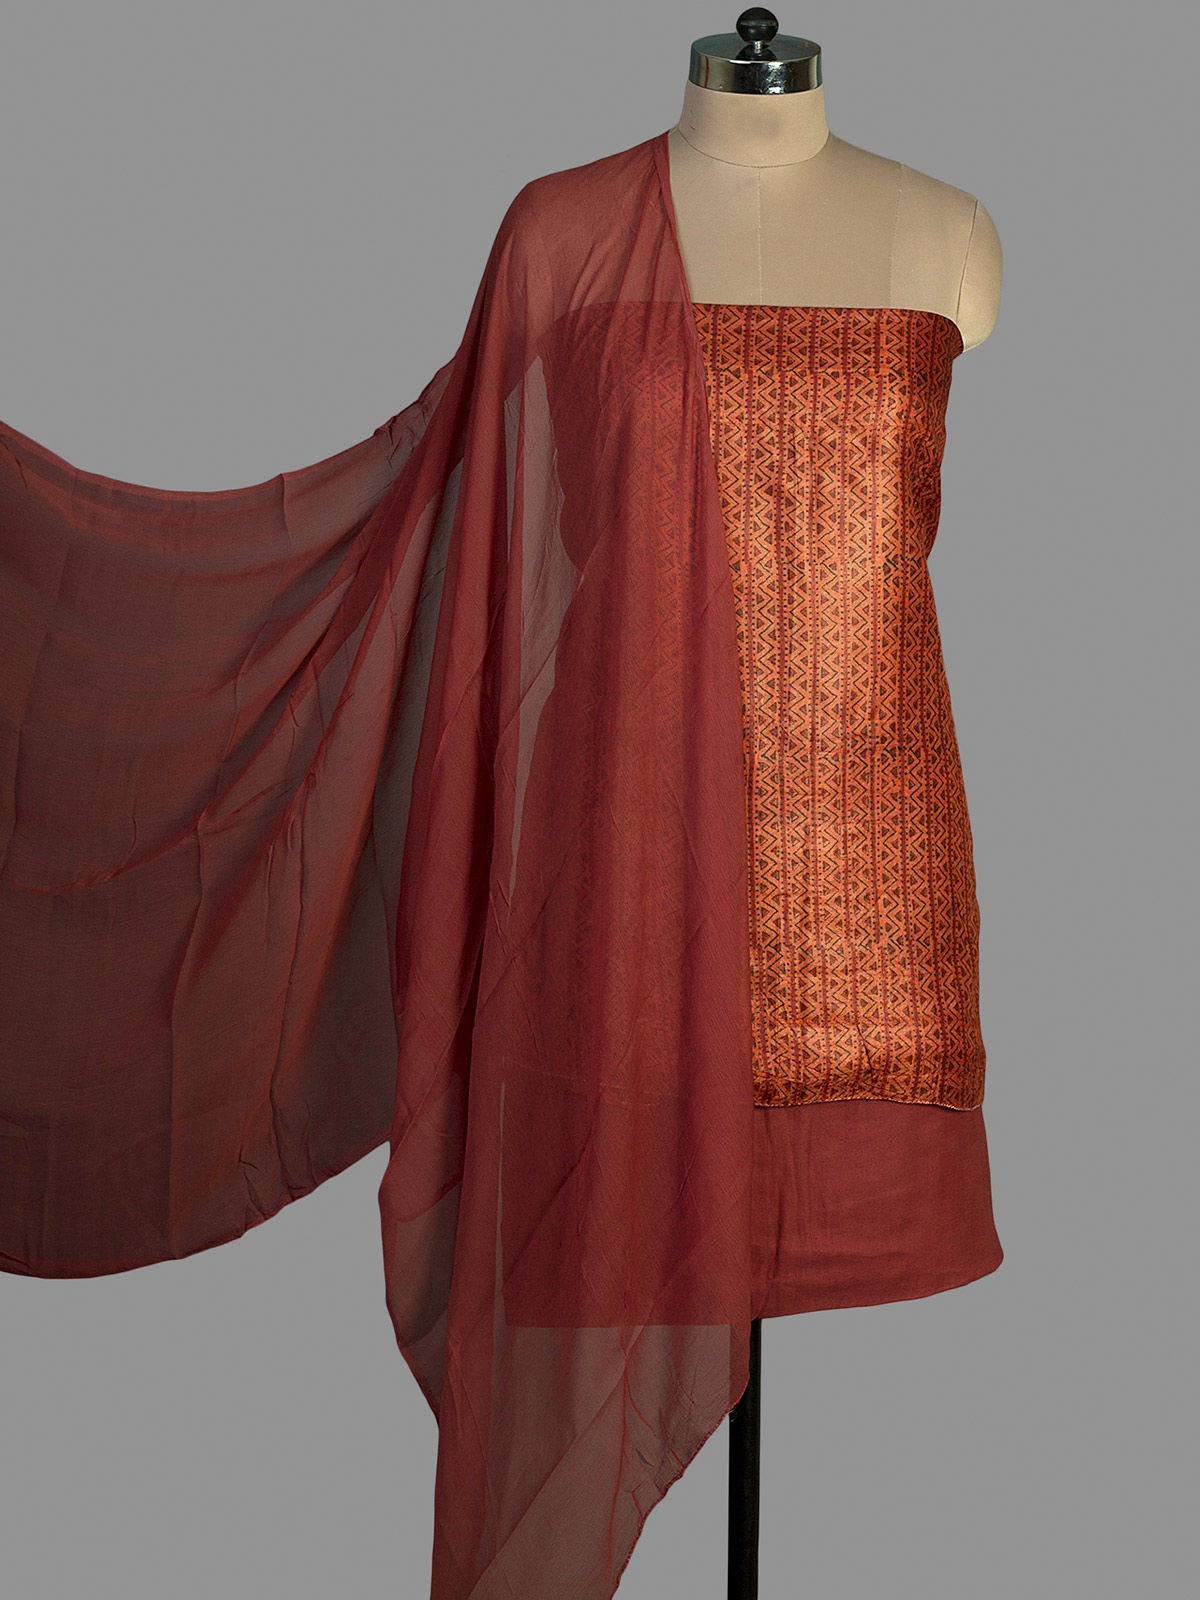 Orange Tussar Silk with Block Print Unstiched Dress Material and Chiffon Dupatta